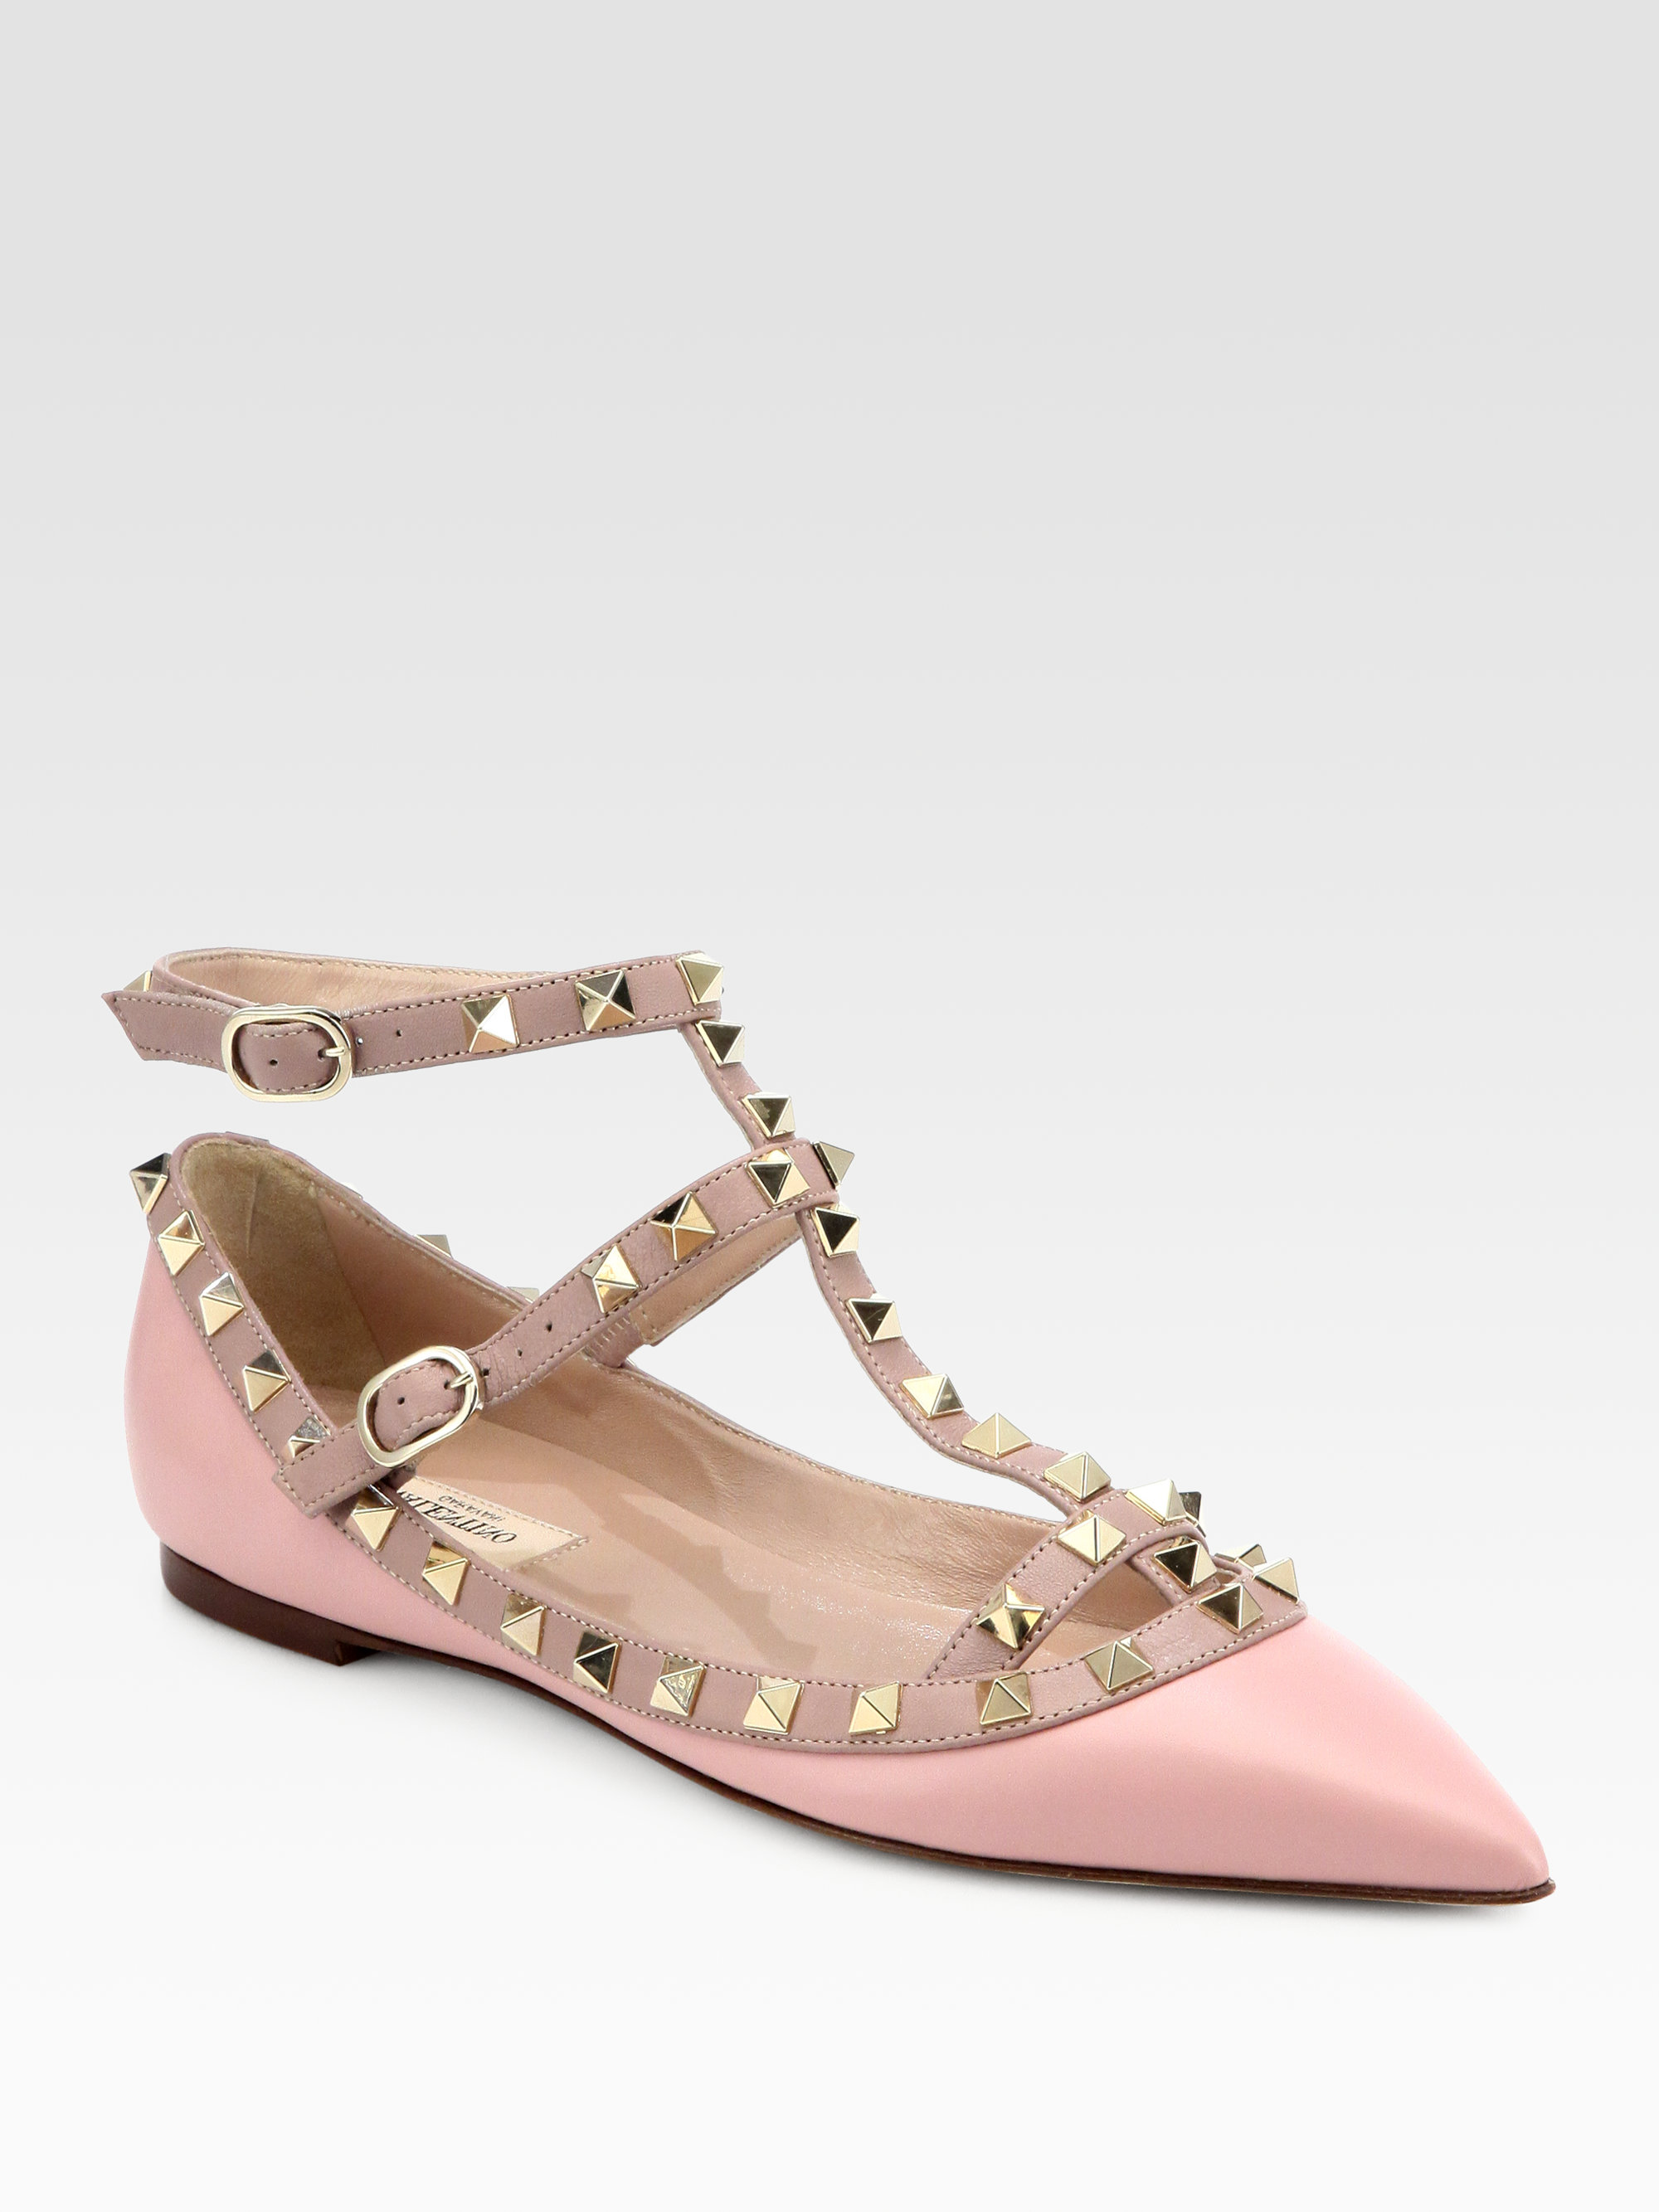 Valentino Leather Rockstud Cage Flats in Pink (light pink) | Lyst